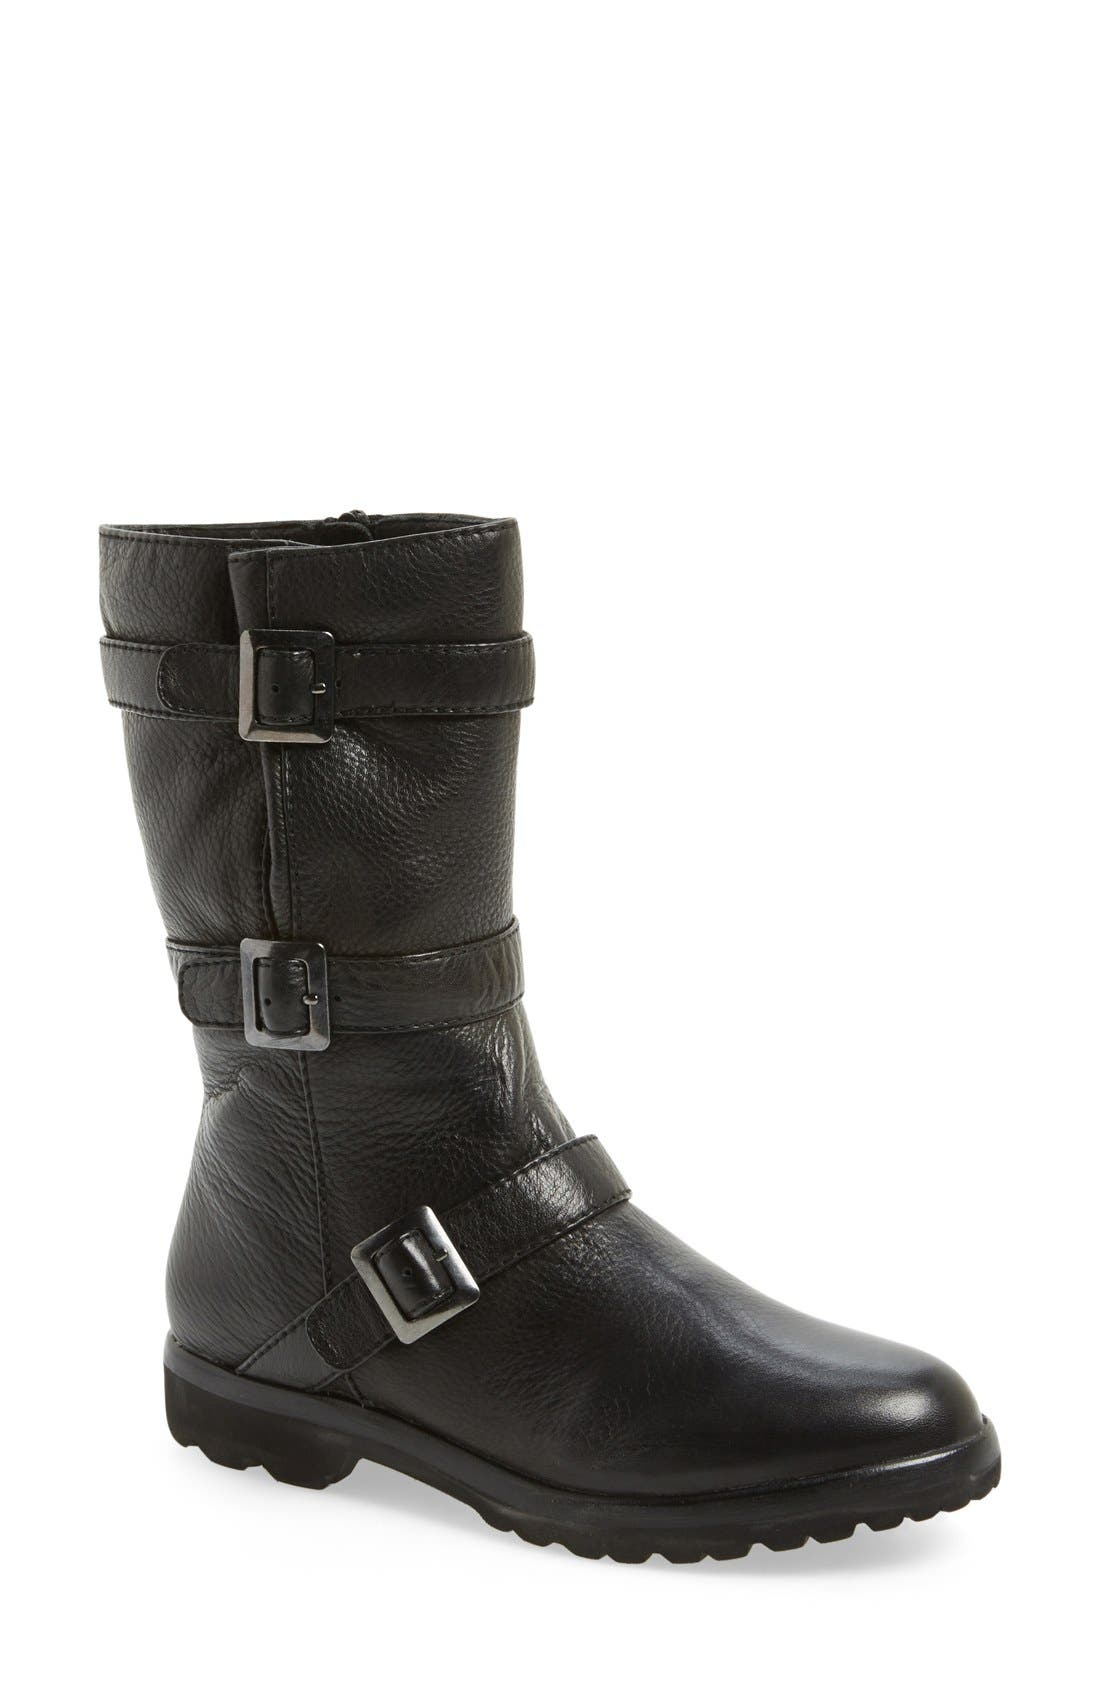 L'Amour Des Pieds 'Racey' Belted Mid Boot (Women)